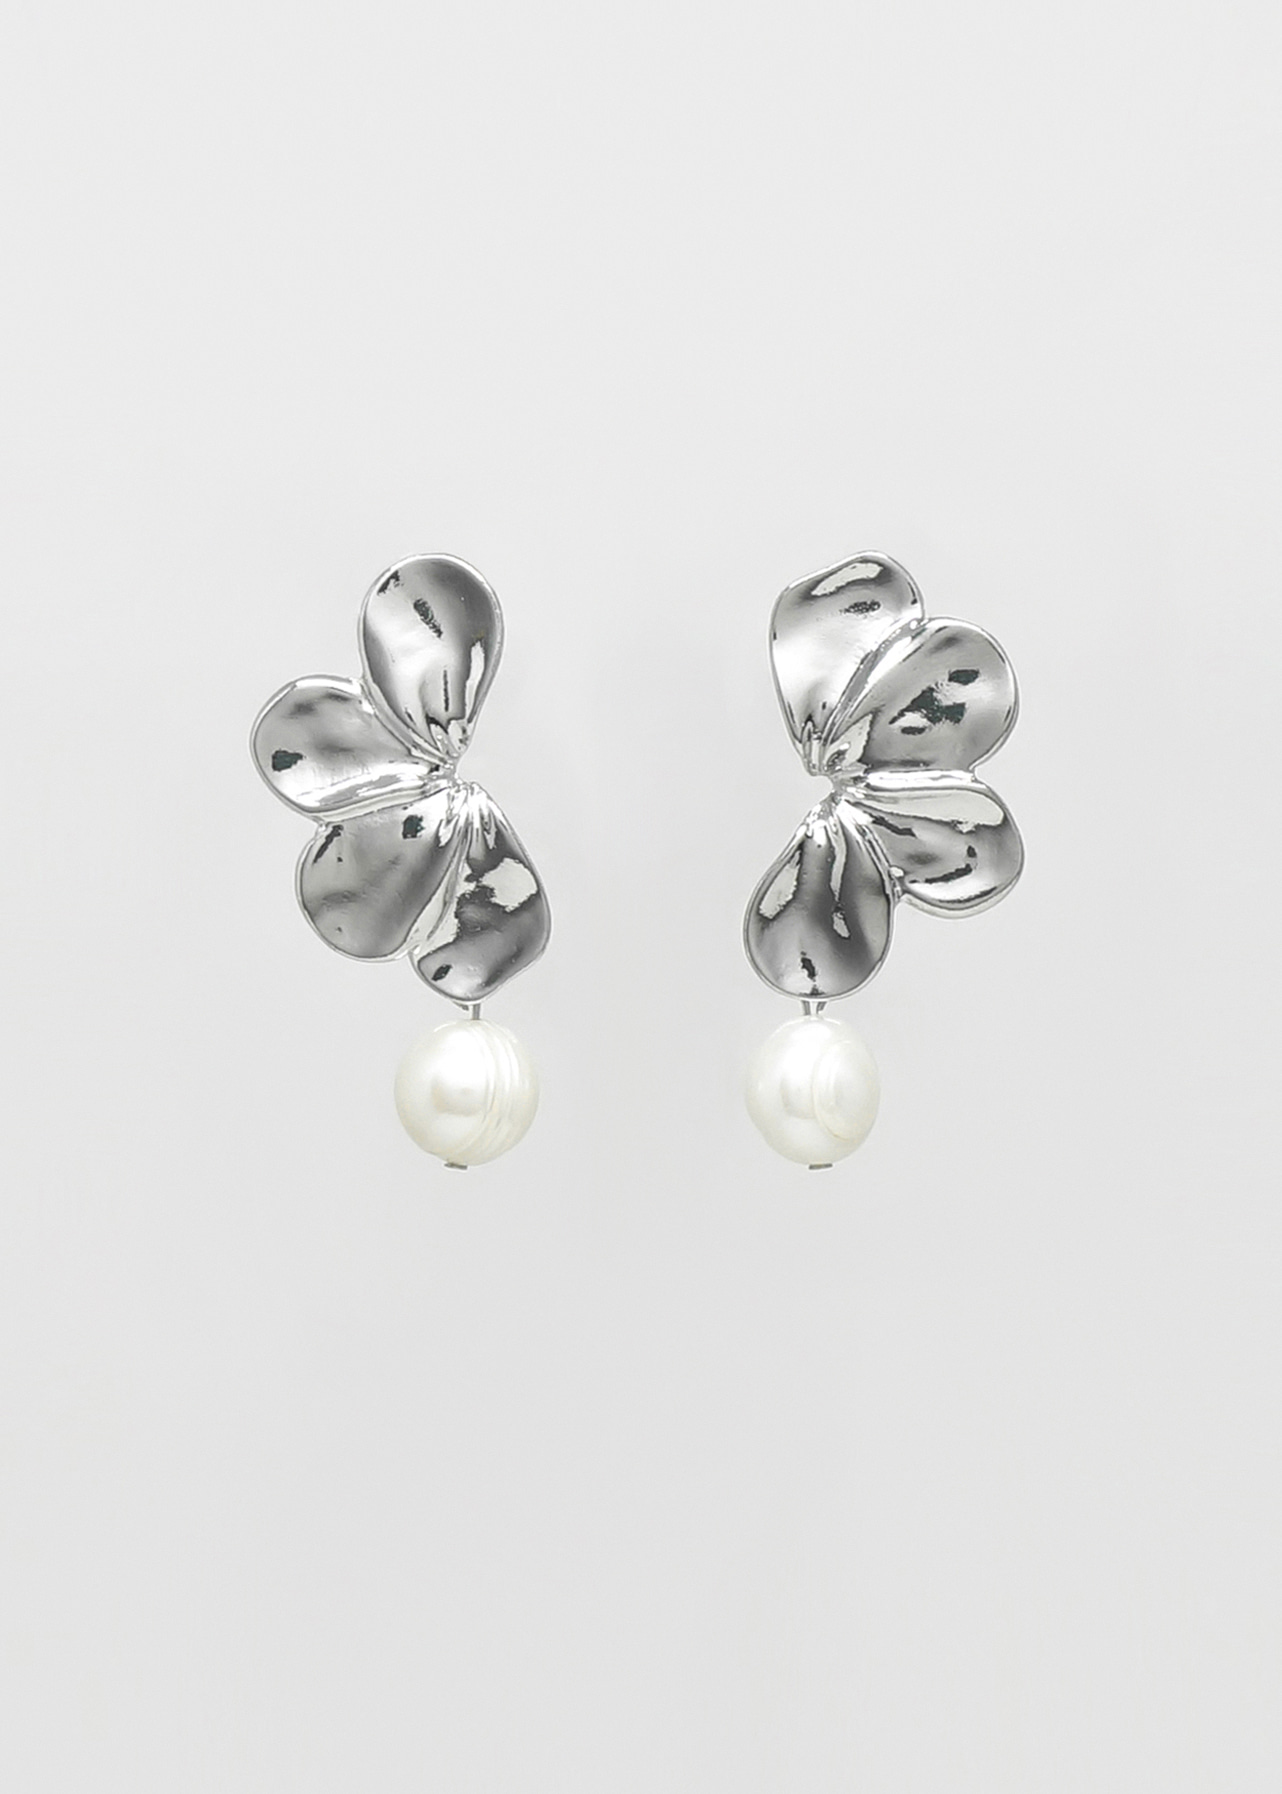 샤이니실버 담수진주 플라워이어링  Shiny Silver Flower Earring with Freshwater Pearls